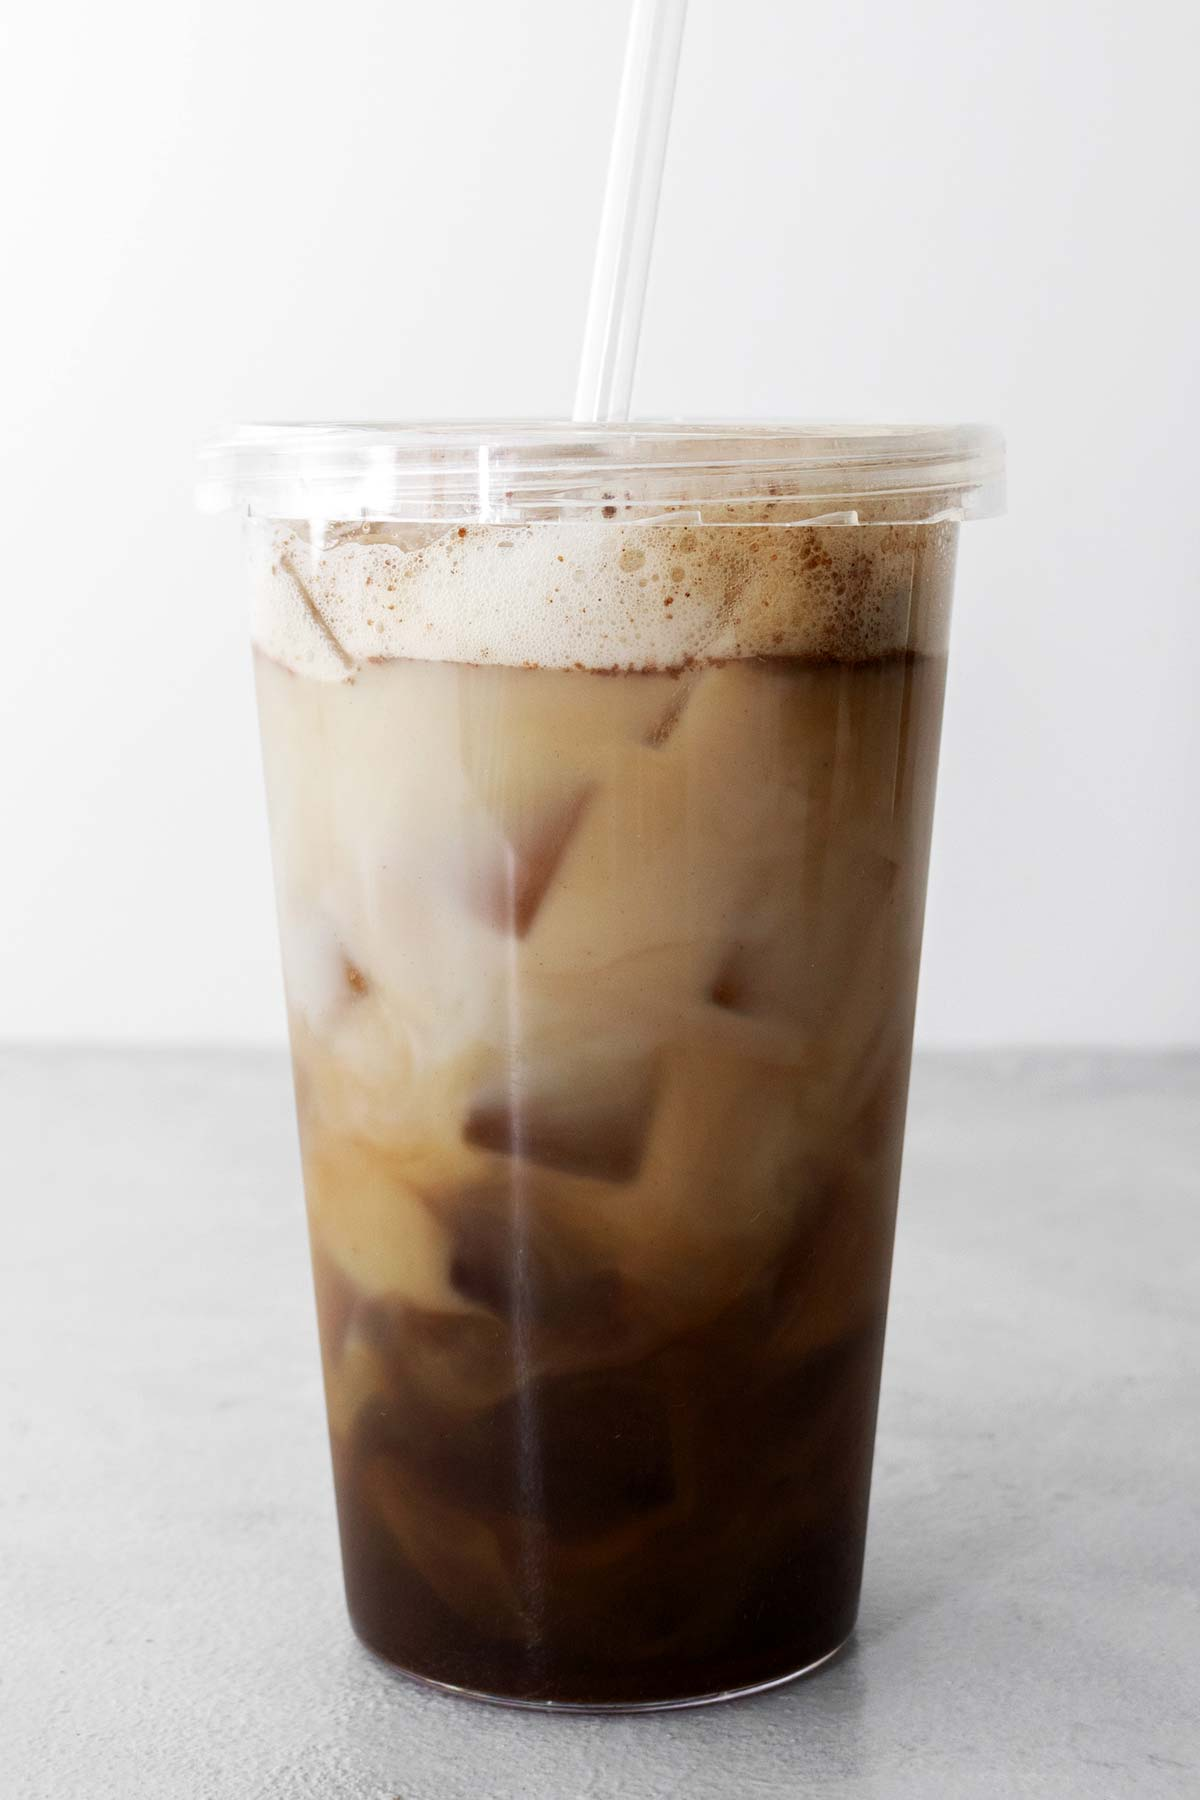 Starbucks Iced Brown Sugar Oatmilk Shaken Espresso copycat drink in a cup with lid and straw.